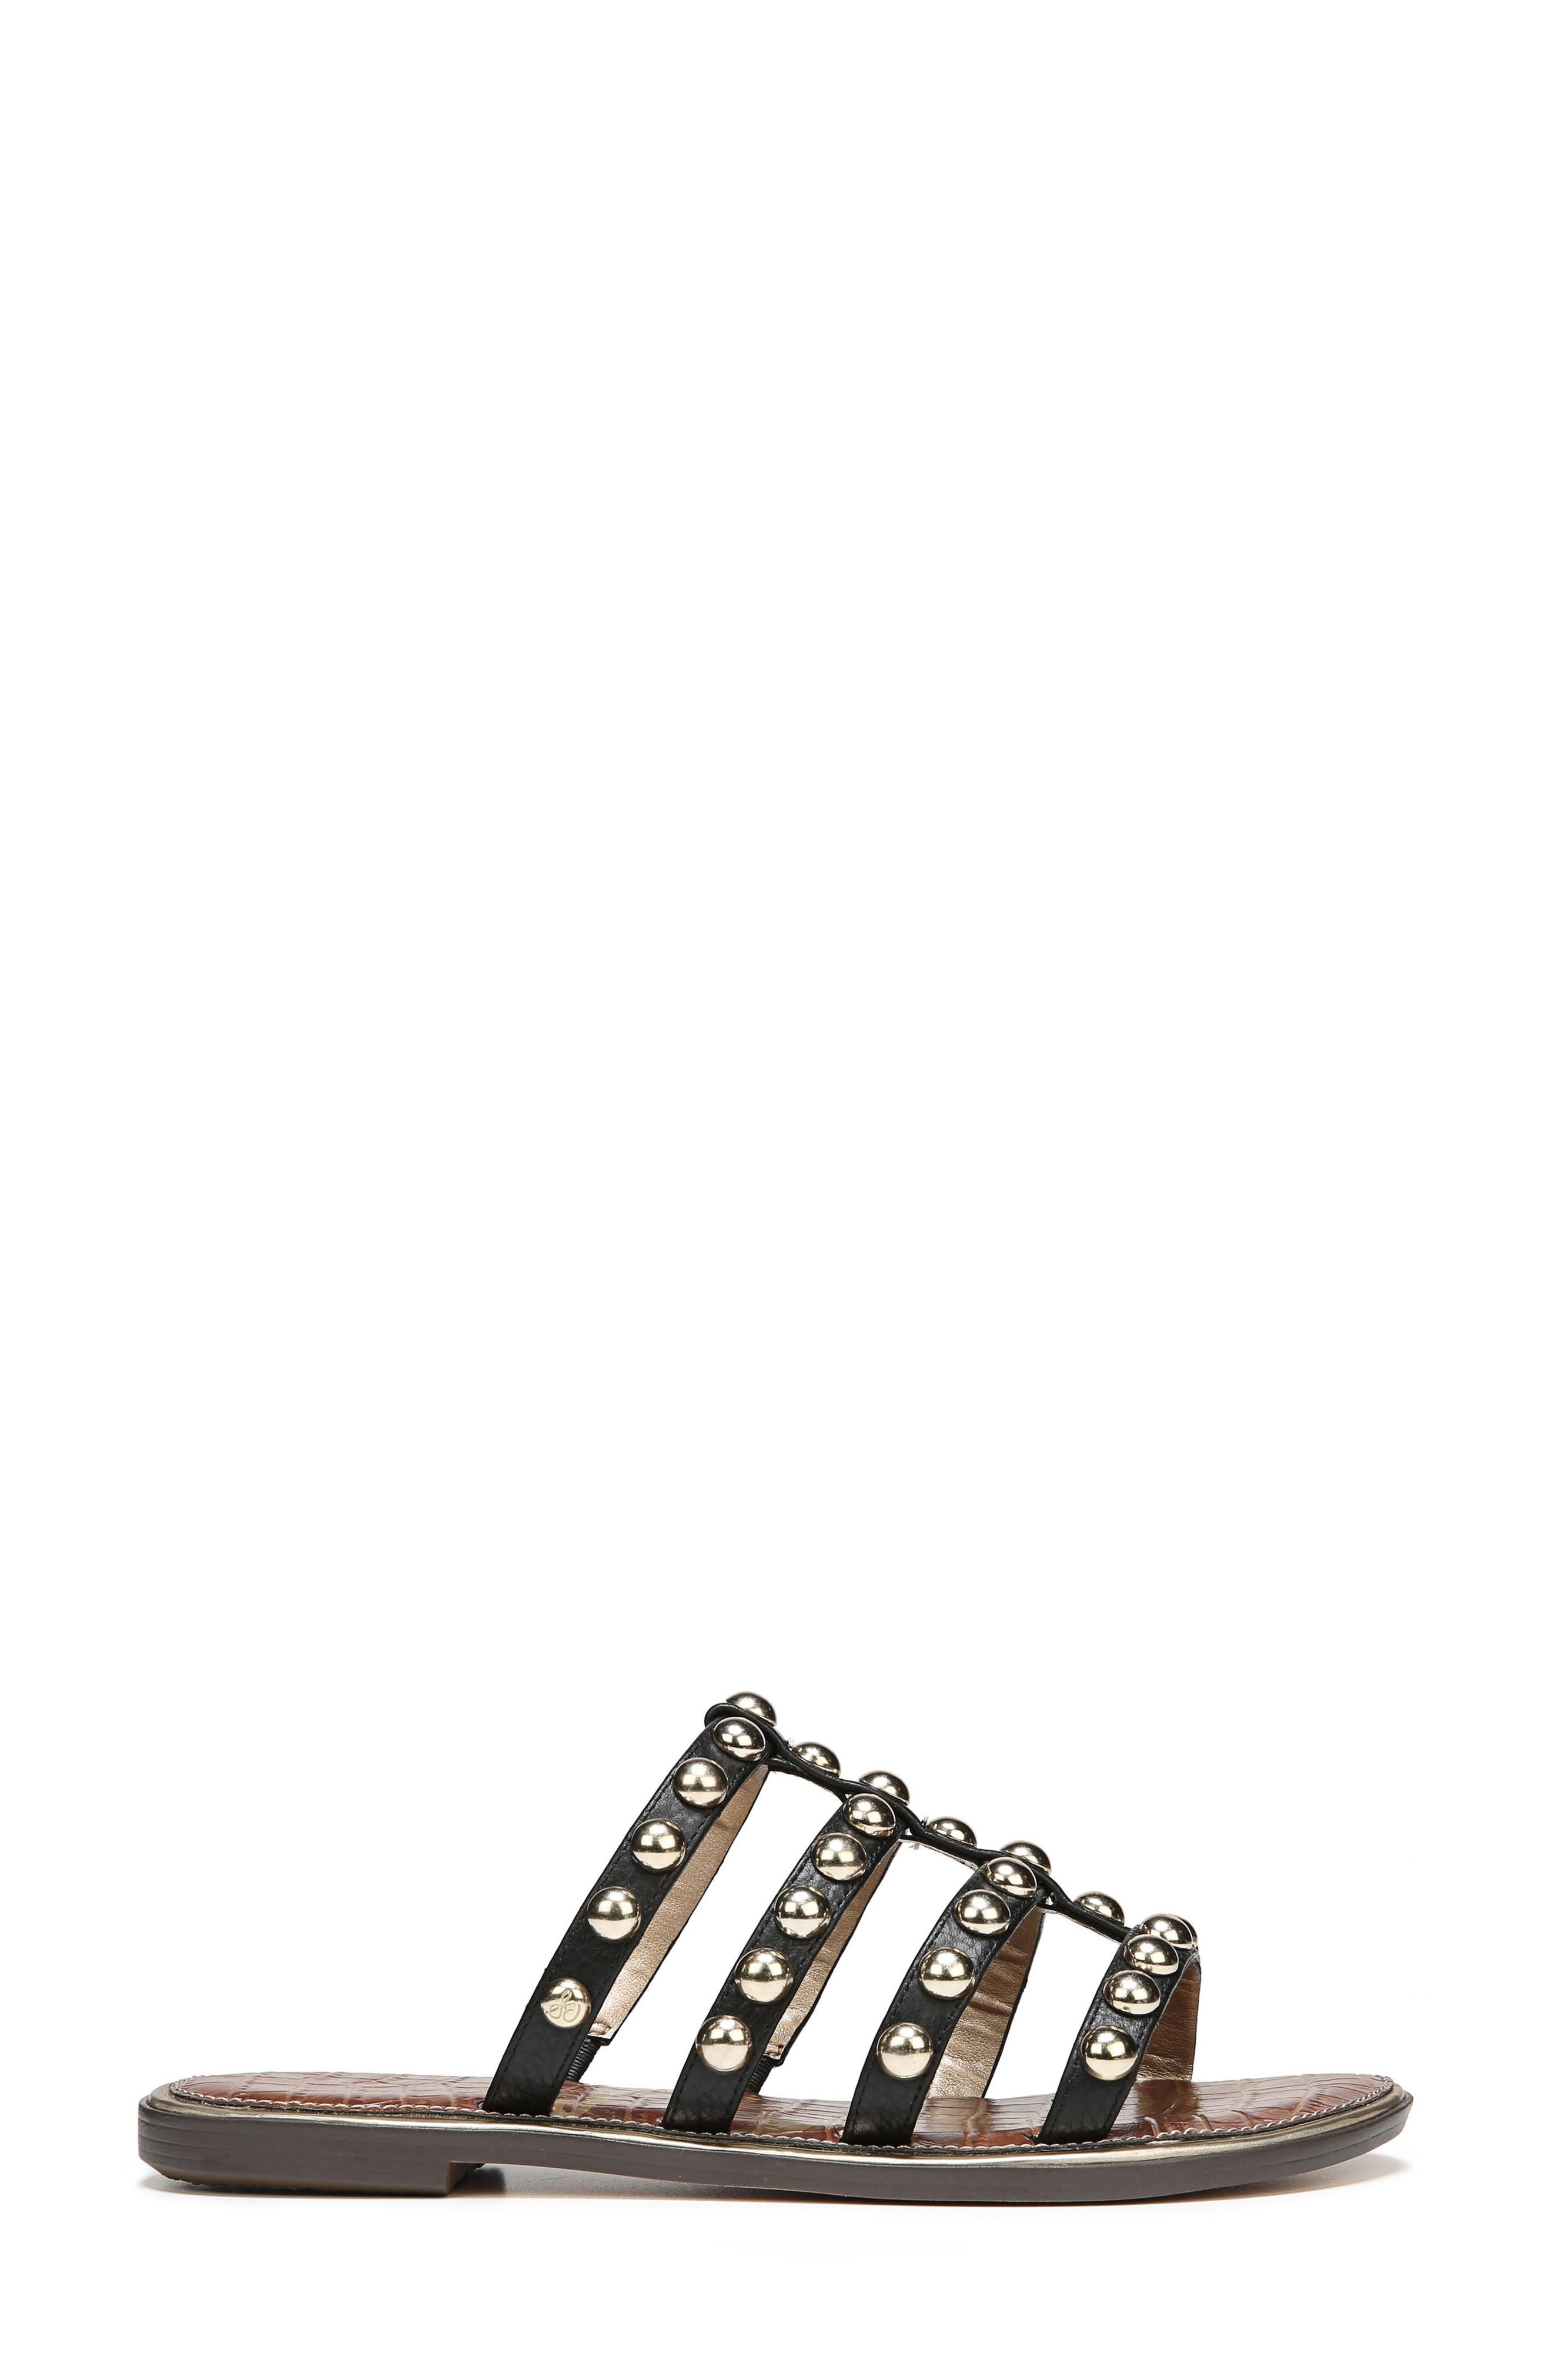 Glenn Studded Slide Sandal,                             Alternate thumbnail 3, color,                             001